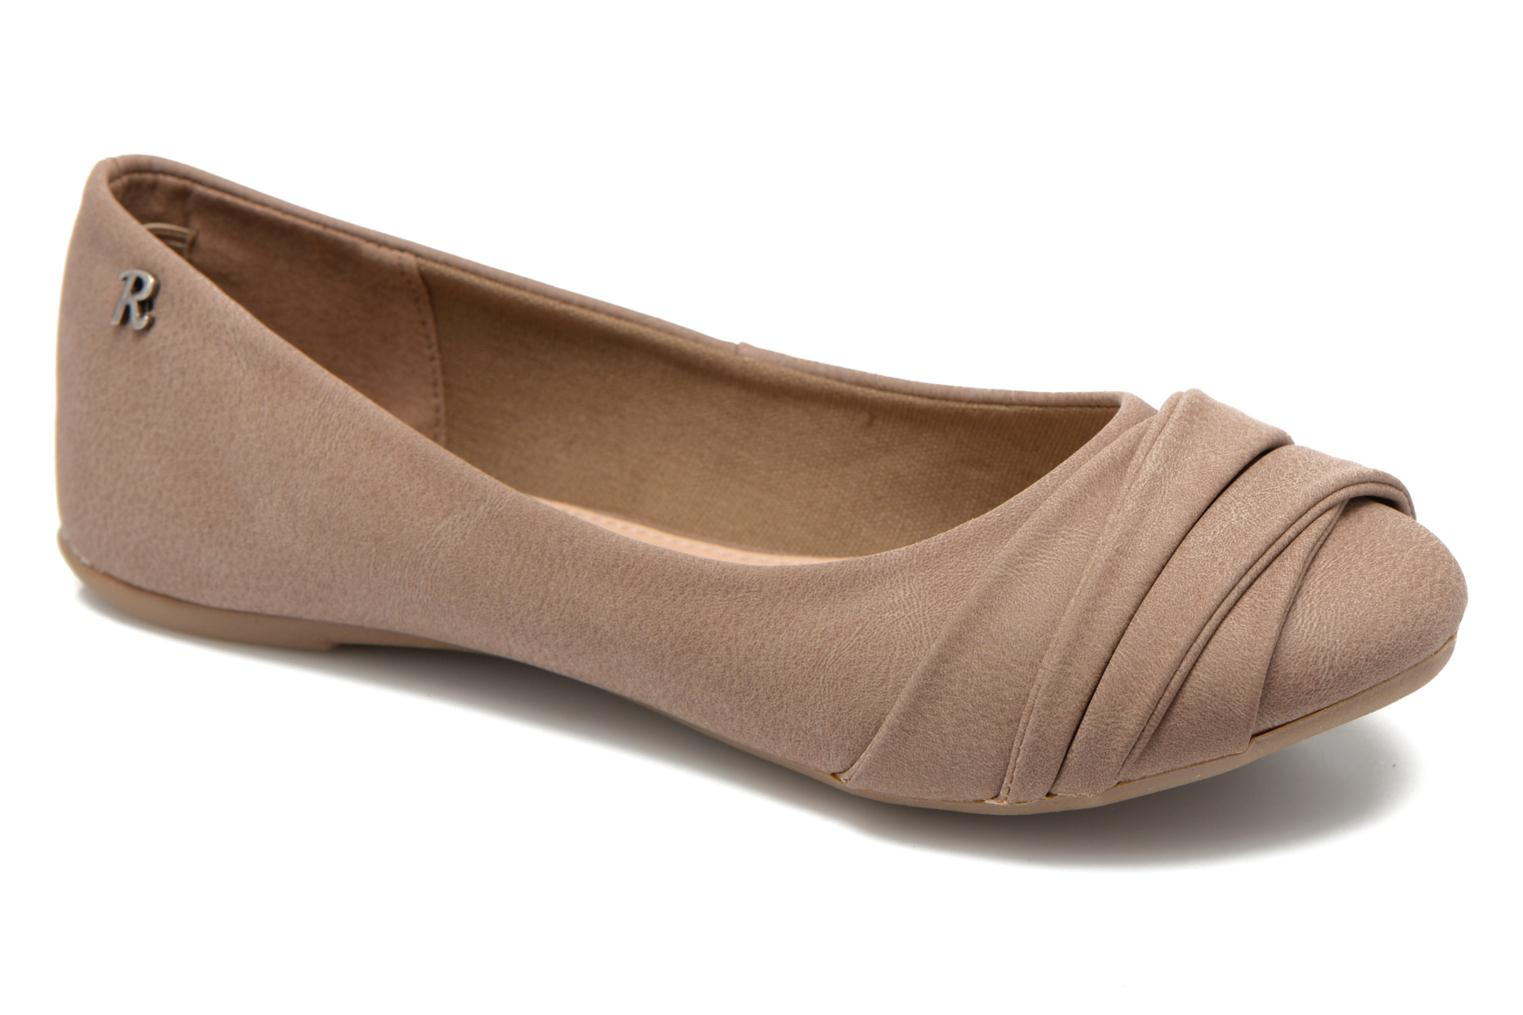 00be699eb4a1 Refresh Sandy 61732 (Marron) - Ballerines chez Sarenza (253953) GH8HUA1Z -  destrainspourtous.fr